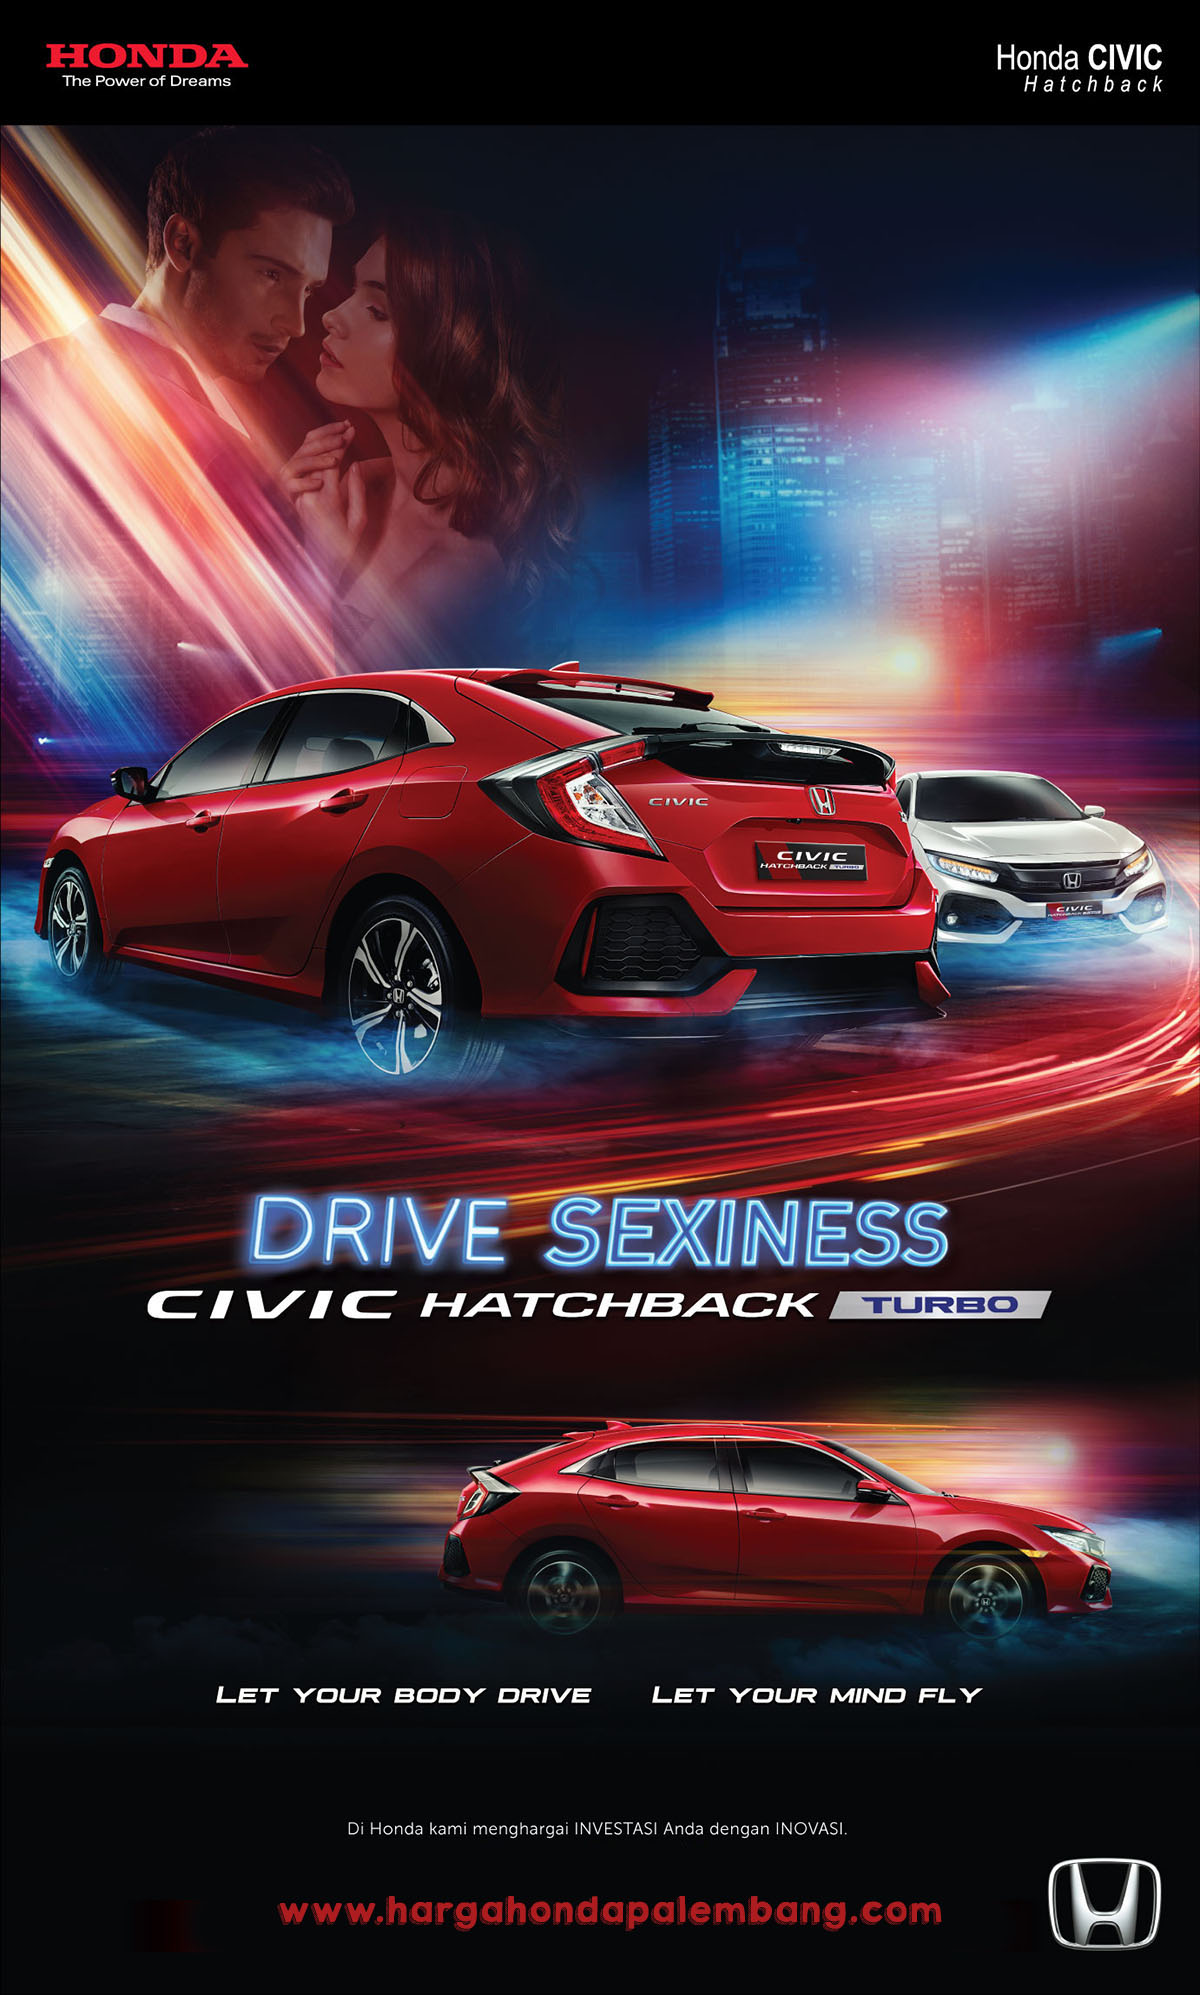 DRIVE SEXINESS CIVIC HATCHBACK